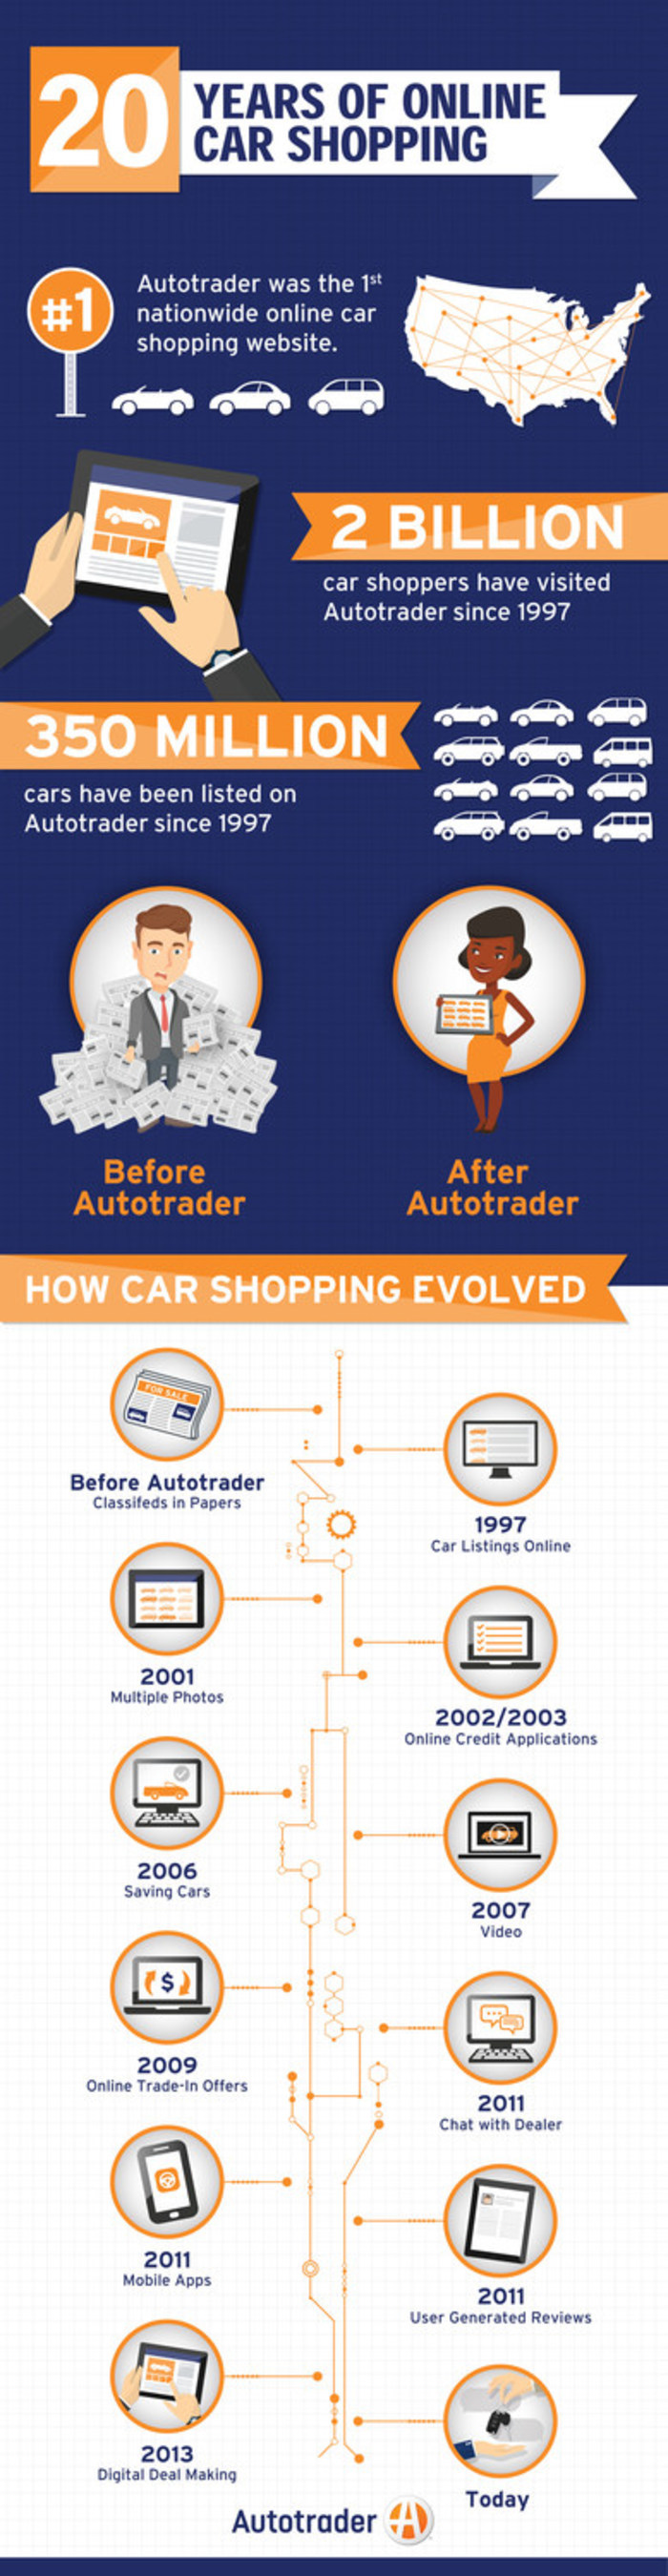 Autotrader Celebrates 20th Anniversary as Online Car Shopping ...